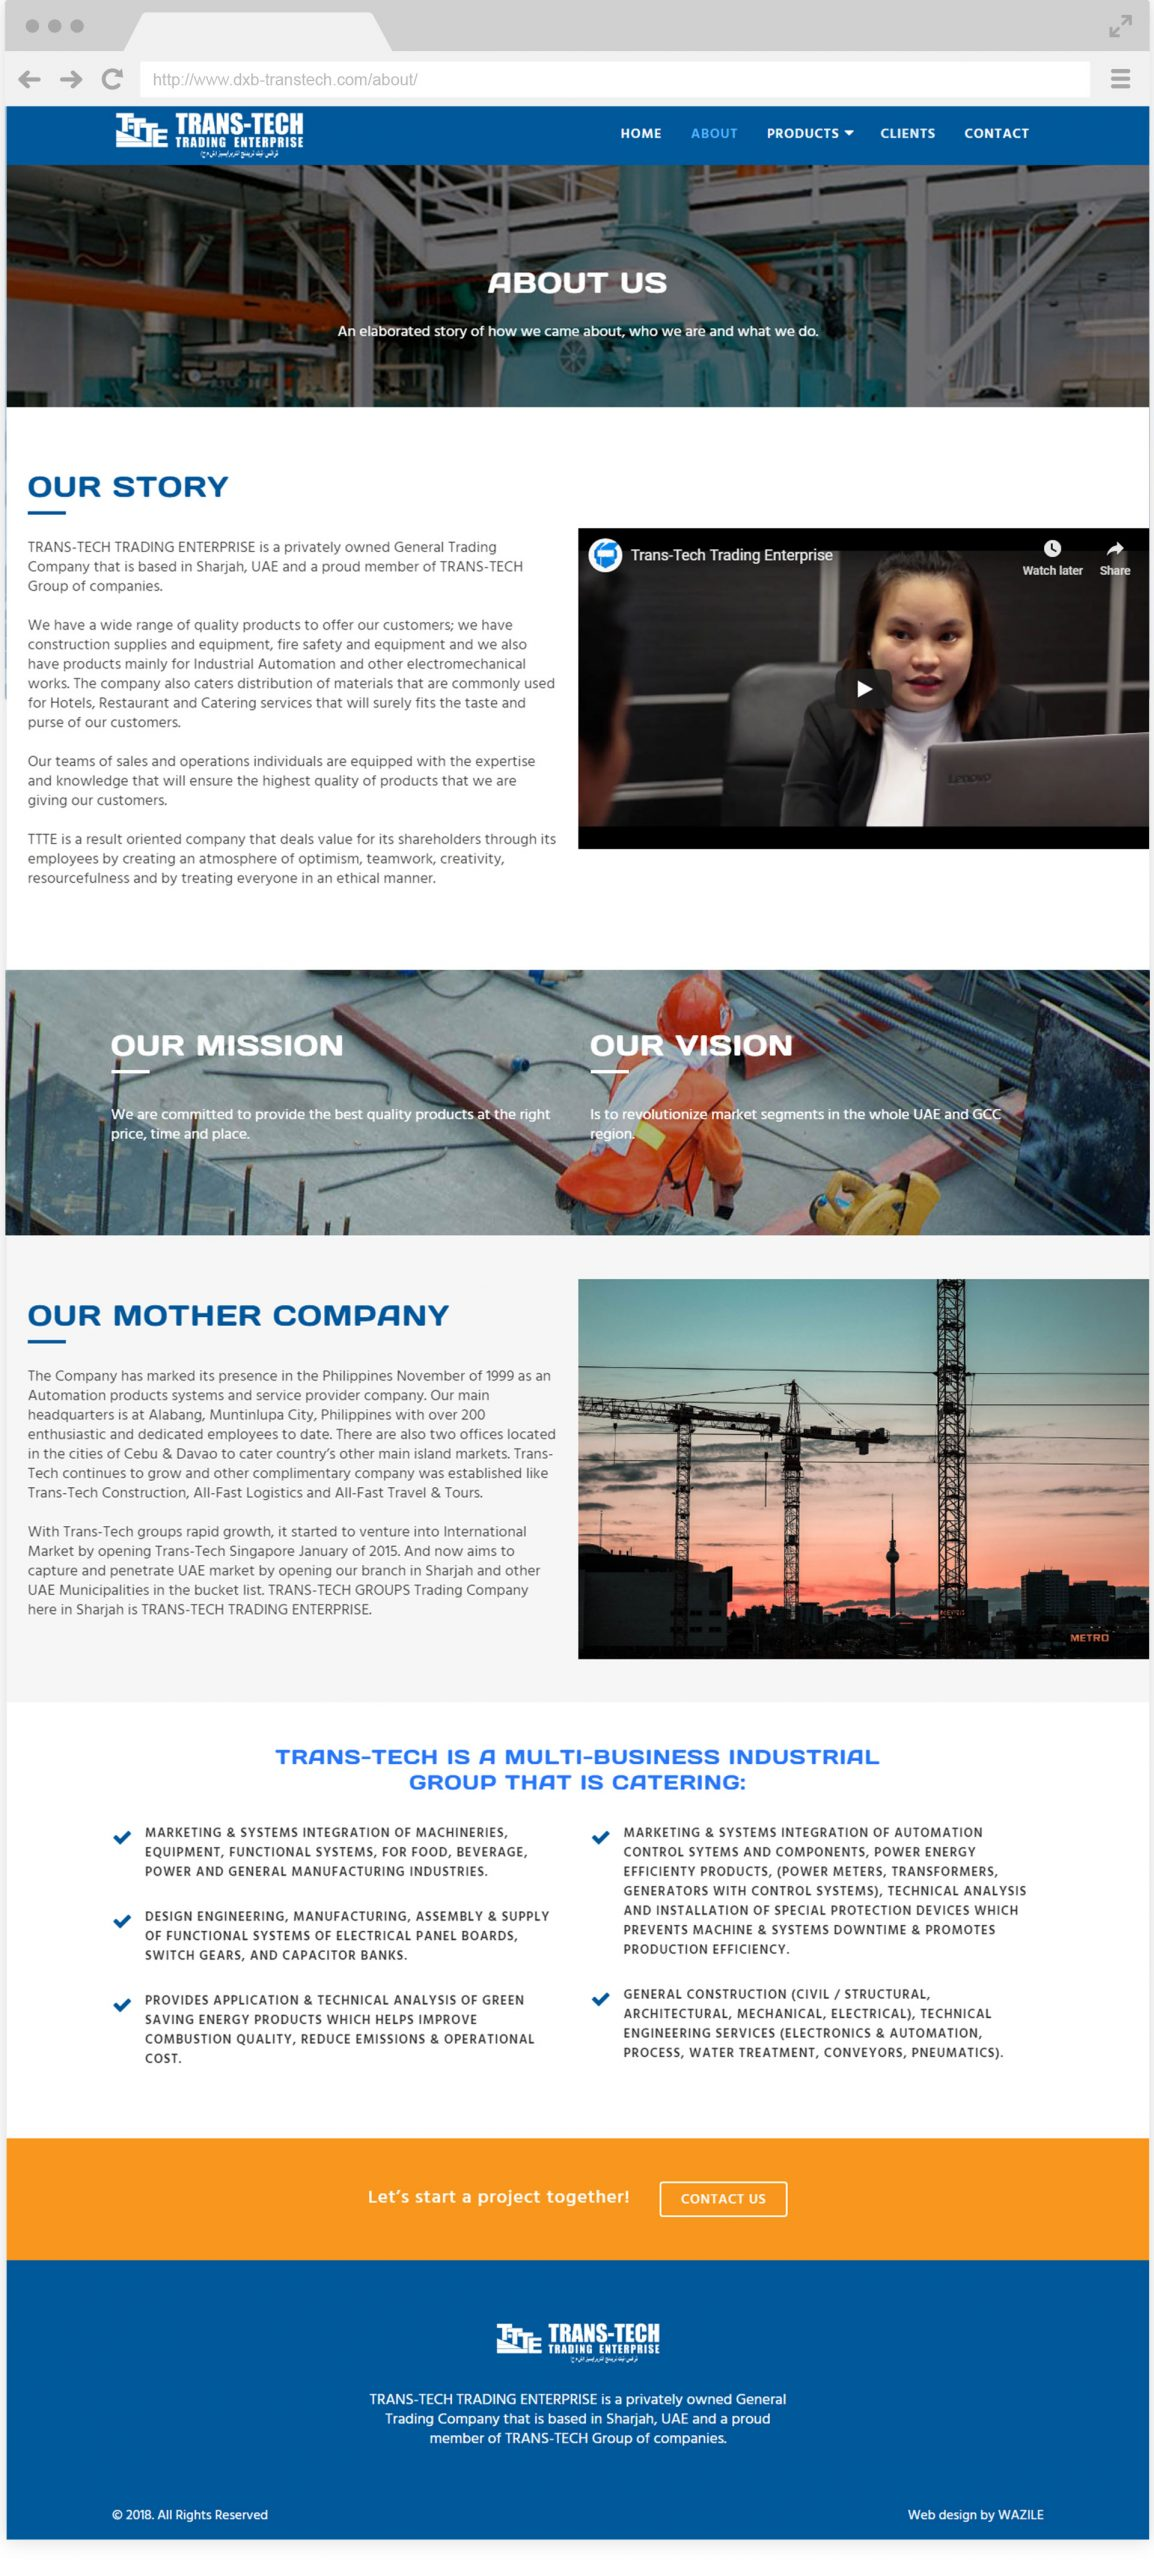 DXB Transtech About